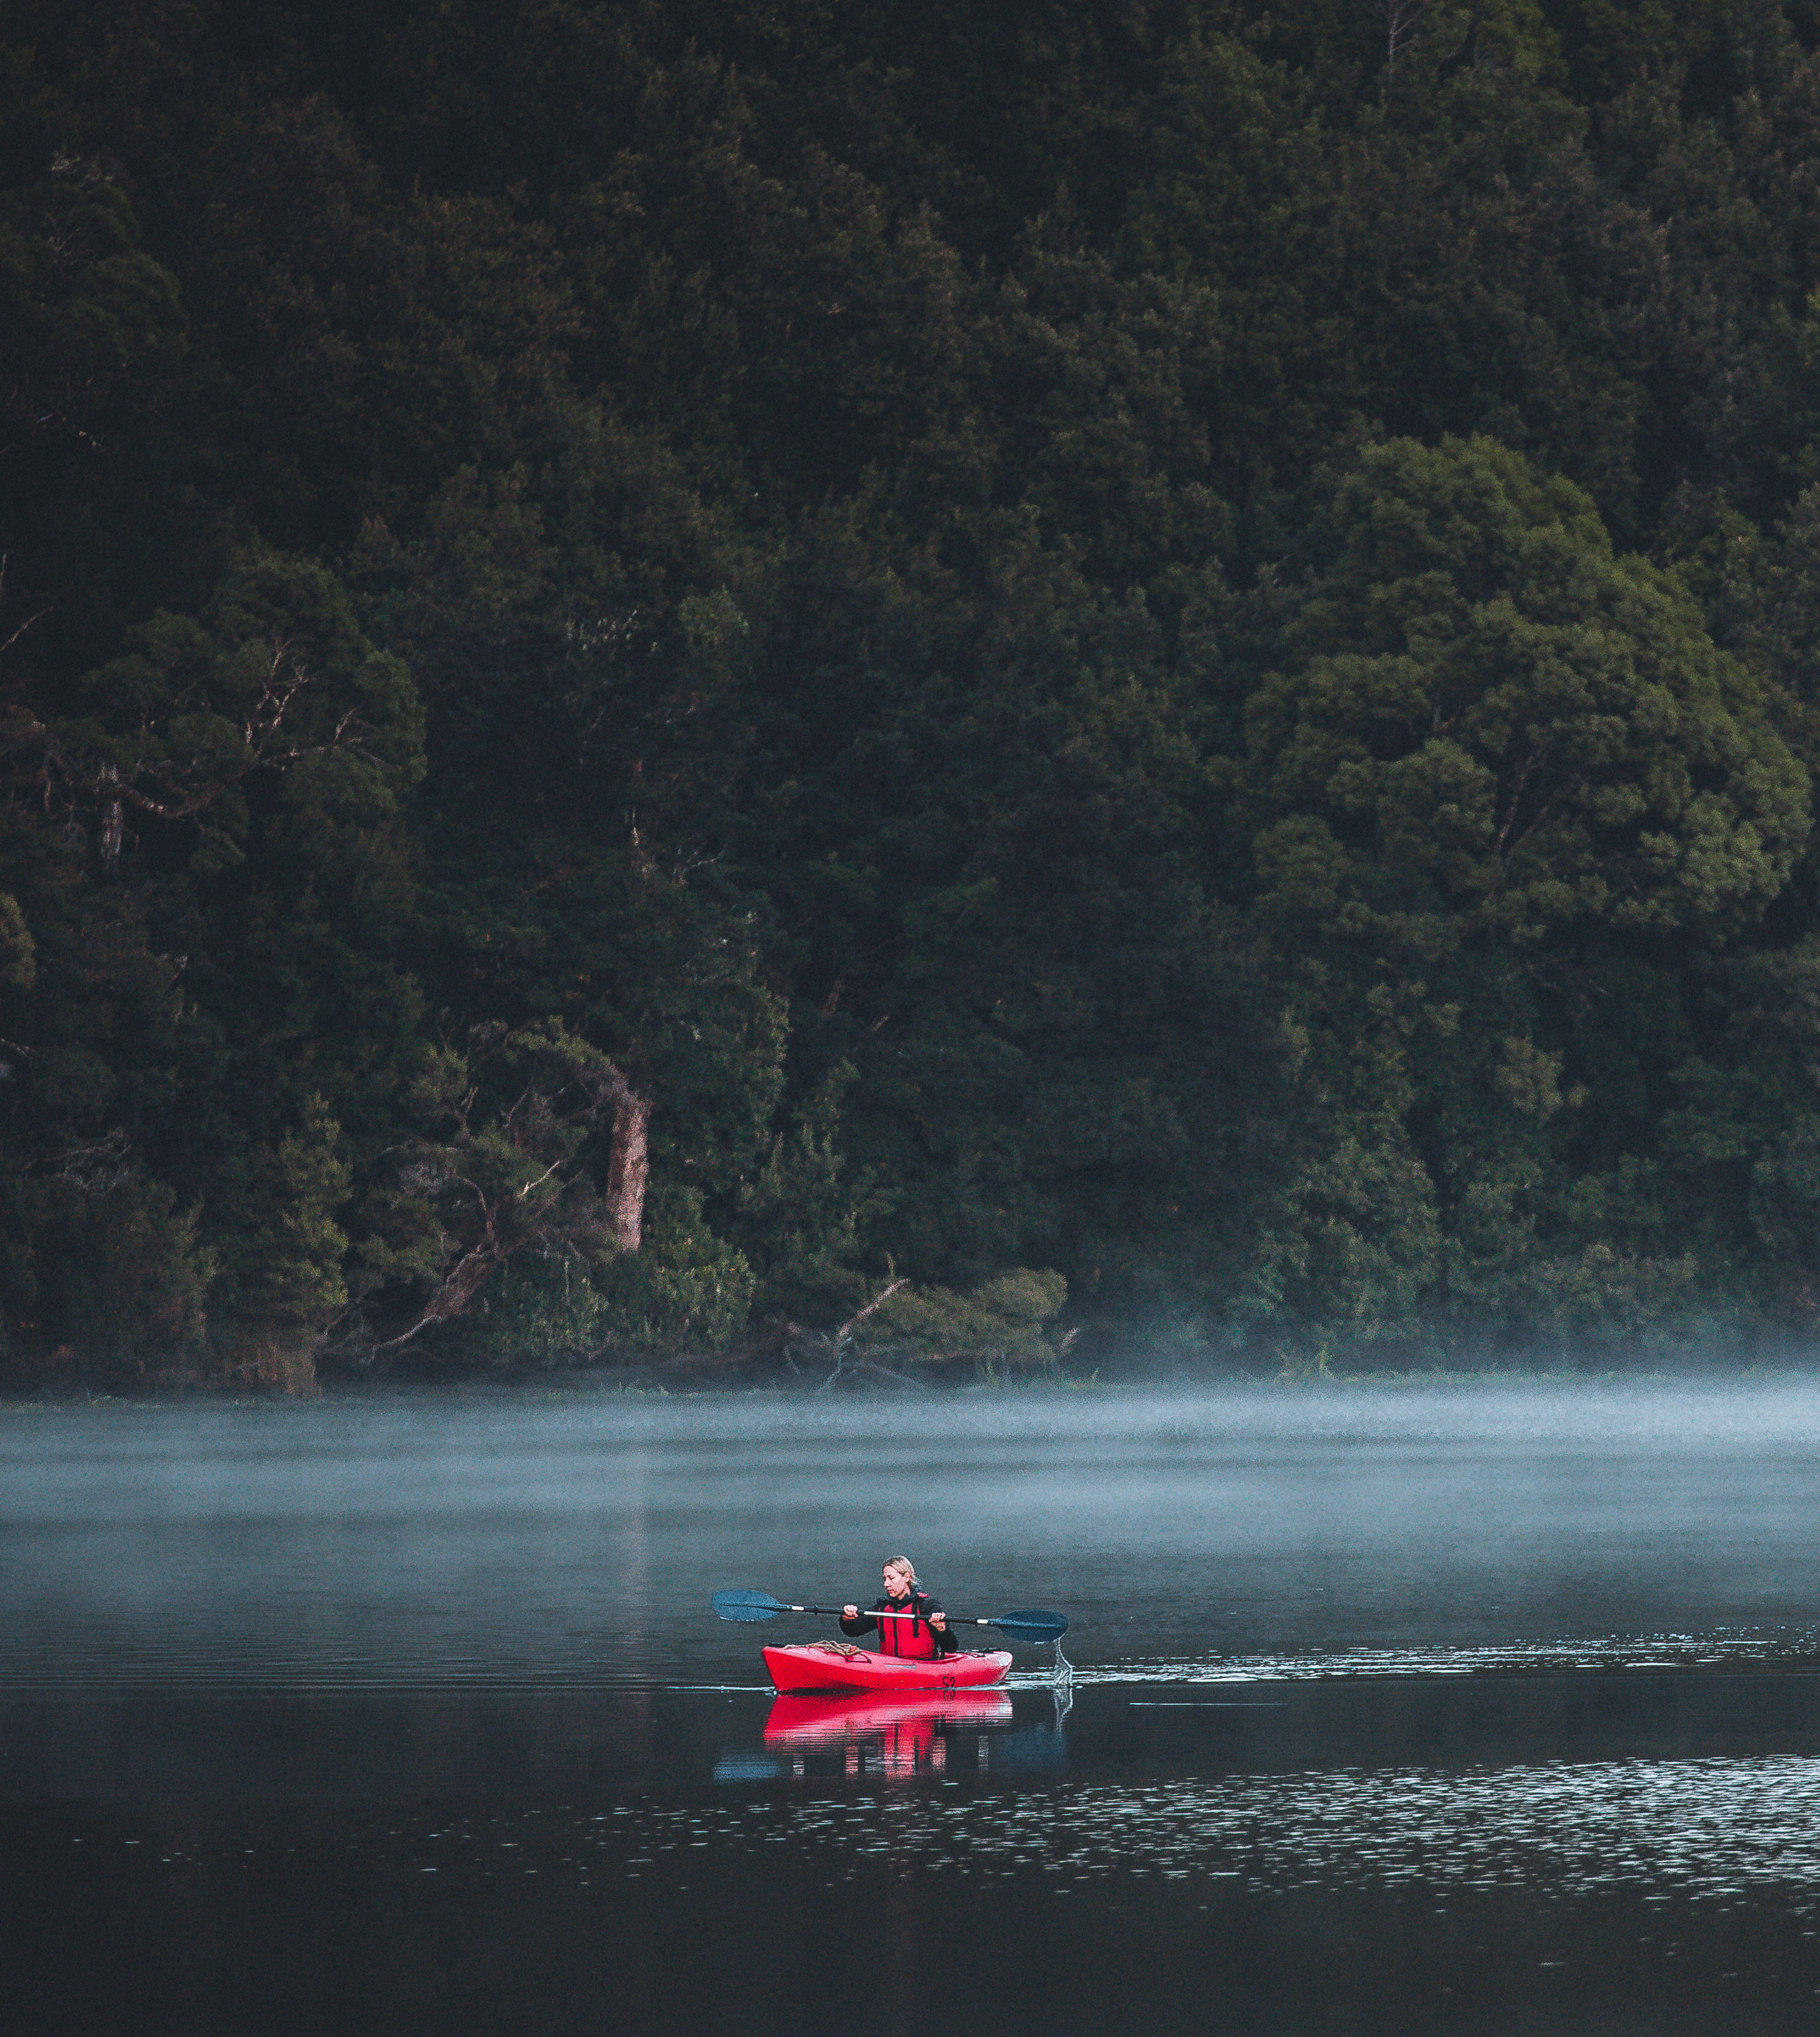 A red kayak floats down the Pieman River in Tasmania.